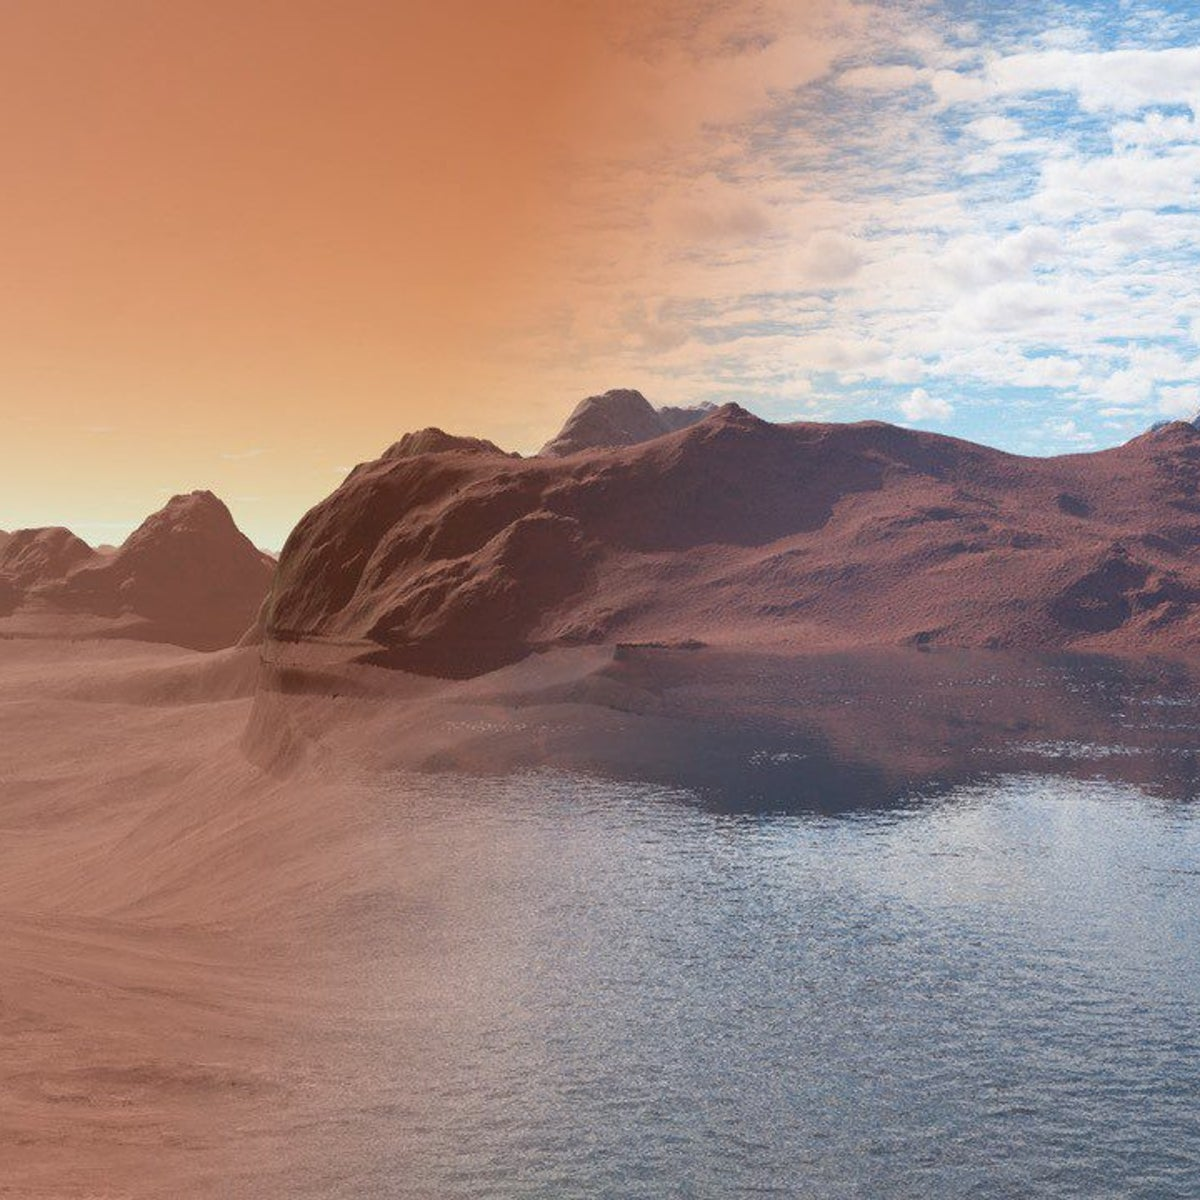 Modern Mars, dry and barren (left), compared with the same scene over 3.5 billion years ago (right), covered in water.